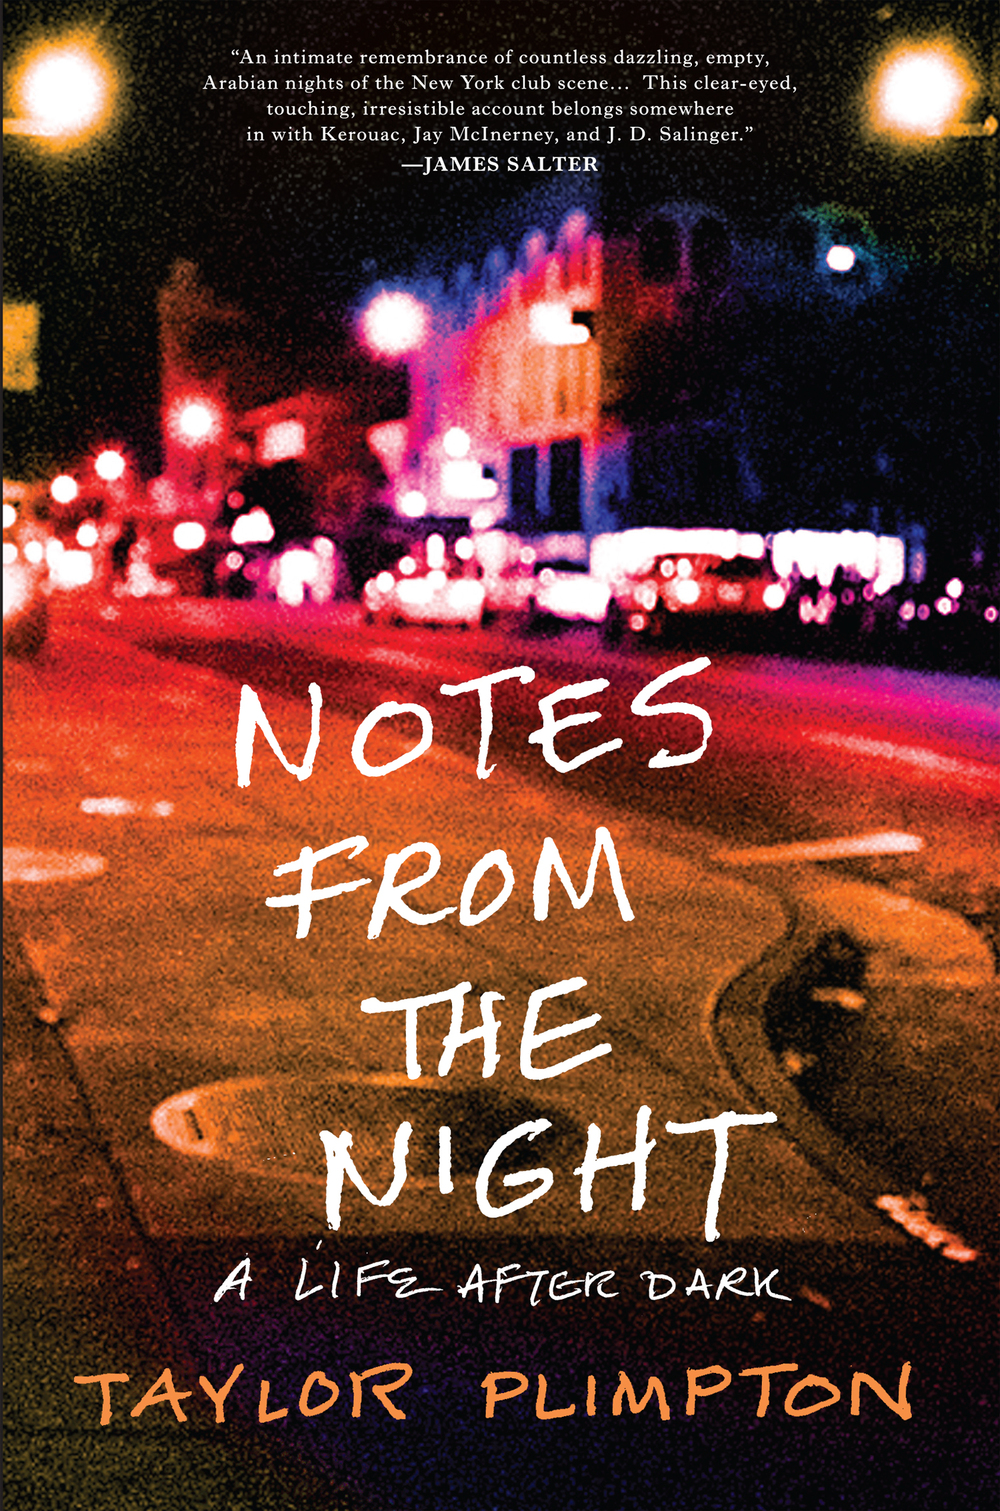 NOTES-FROM-THE-NIGHT-ss6.jpg